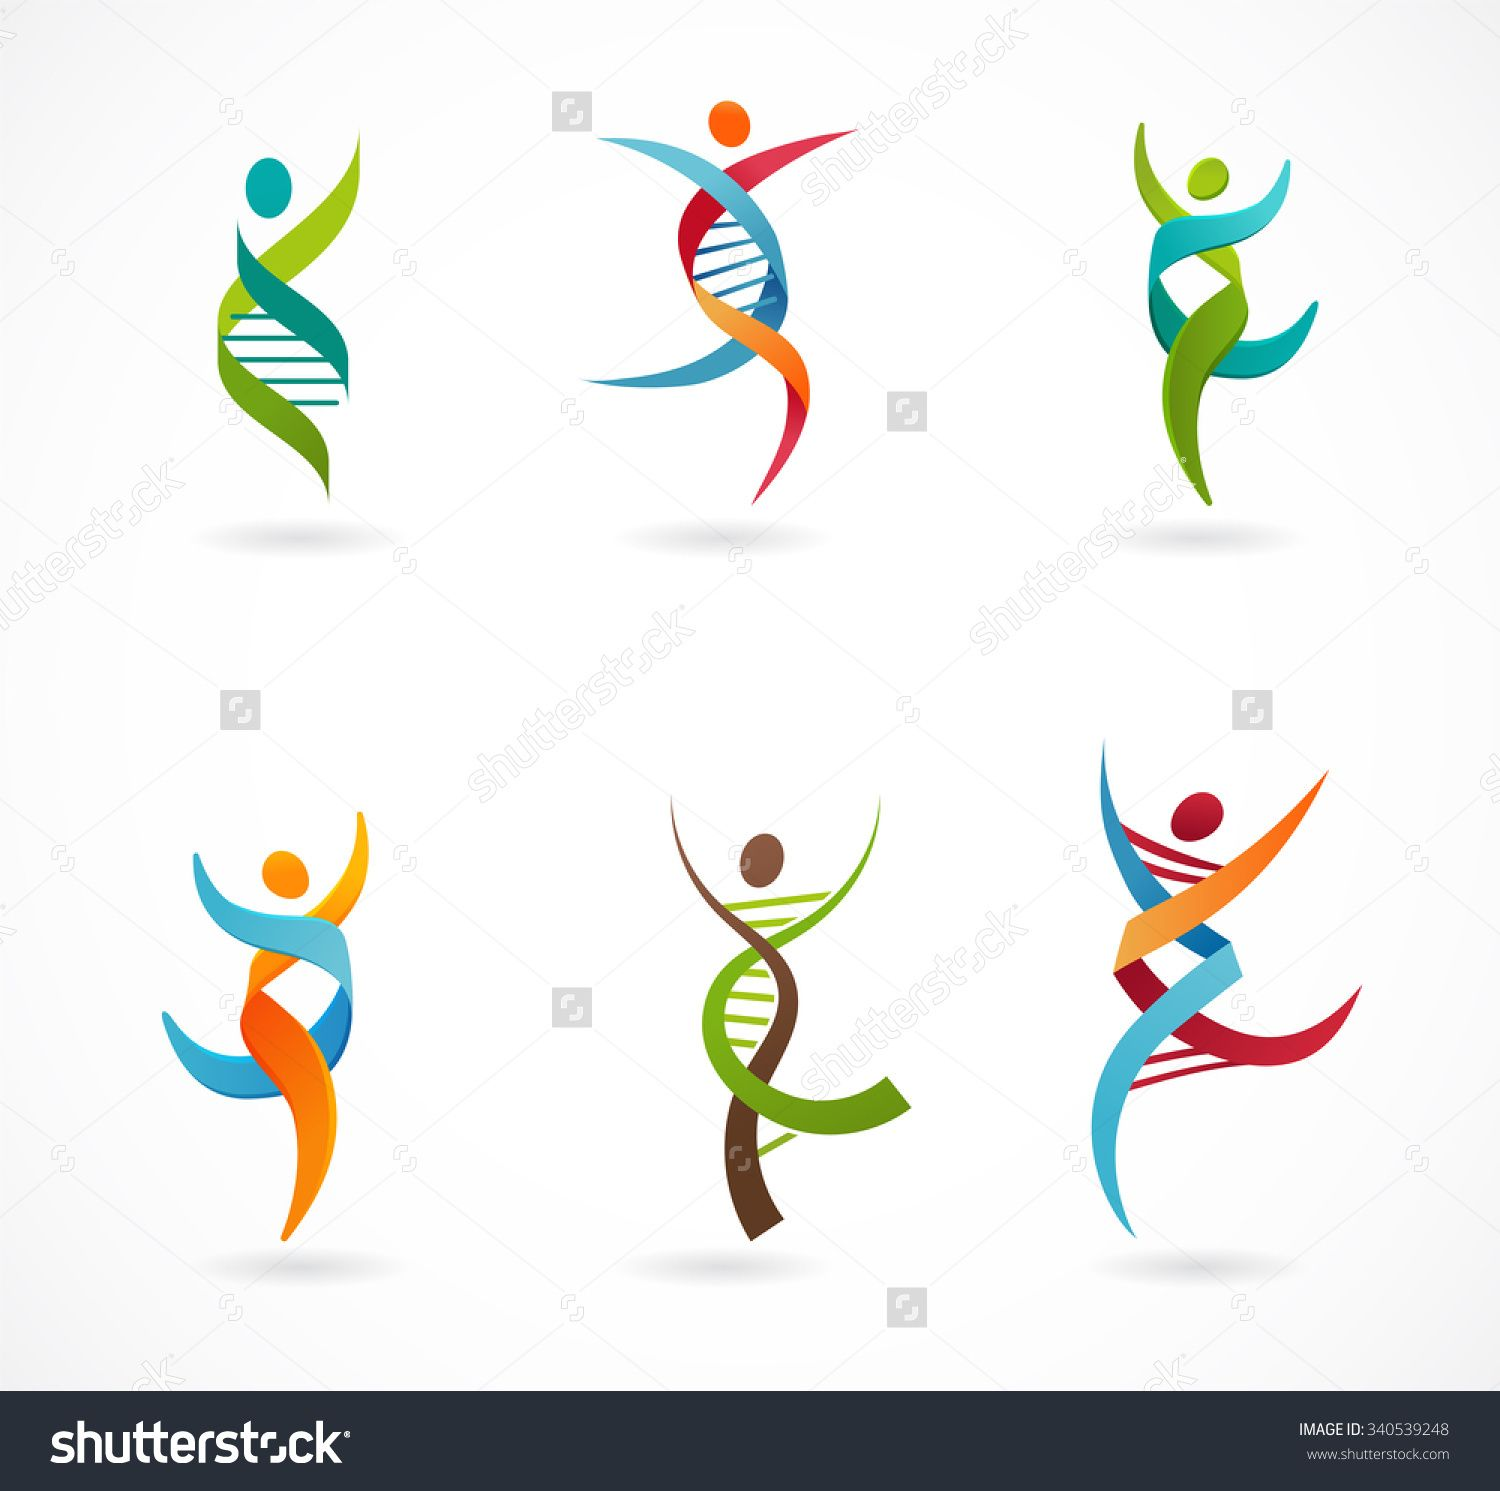 Dna genetic symbol people man and woman icon uni pinterest dna genetic symbol people man and woman icon biocorpaavc